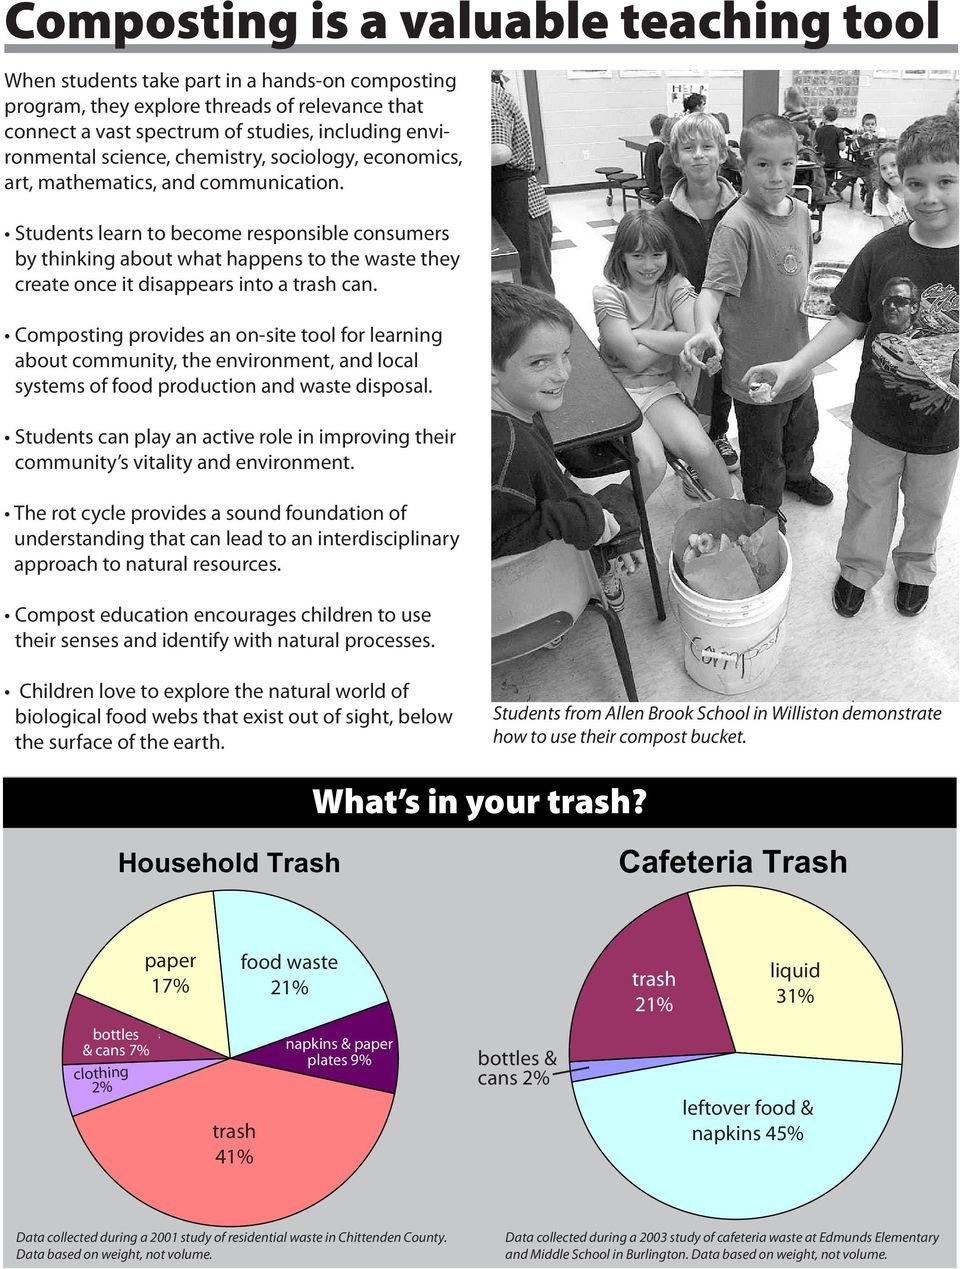 Students learn to become responsible consumers by thinking about what happens to the waste they create once it disappears into a trash can.